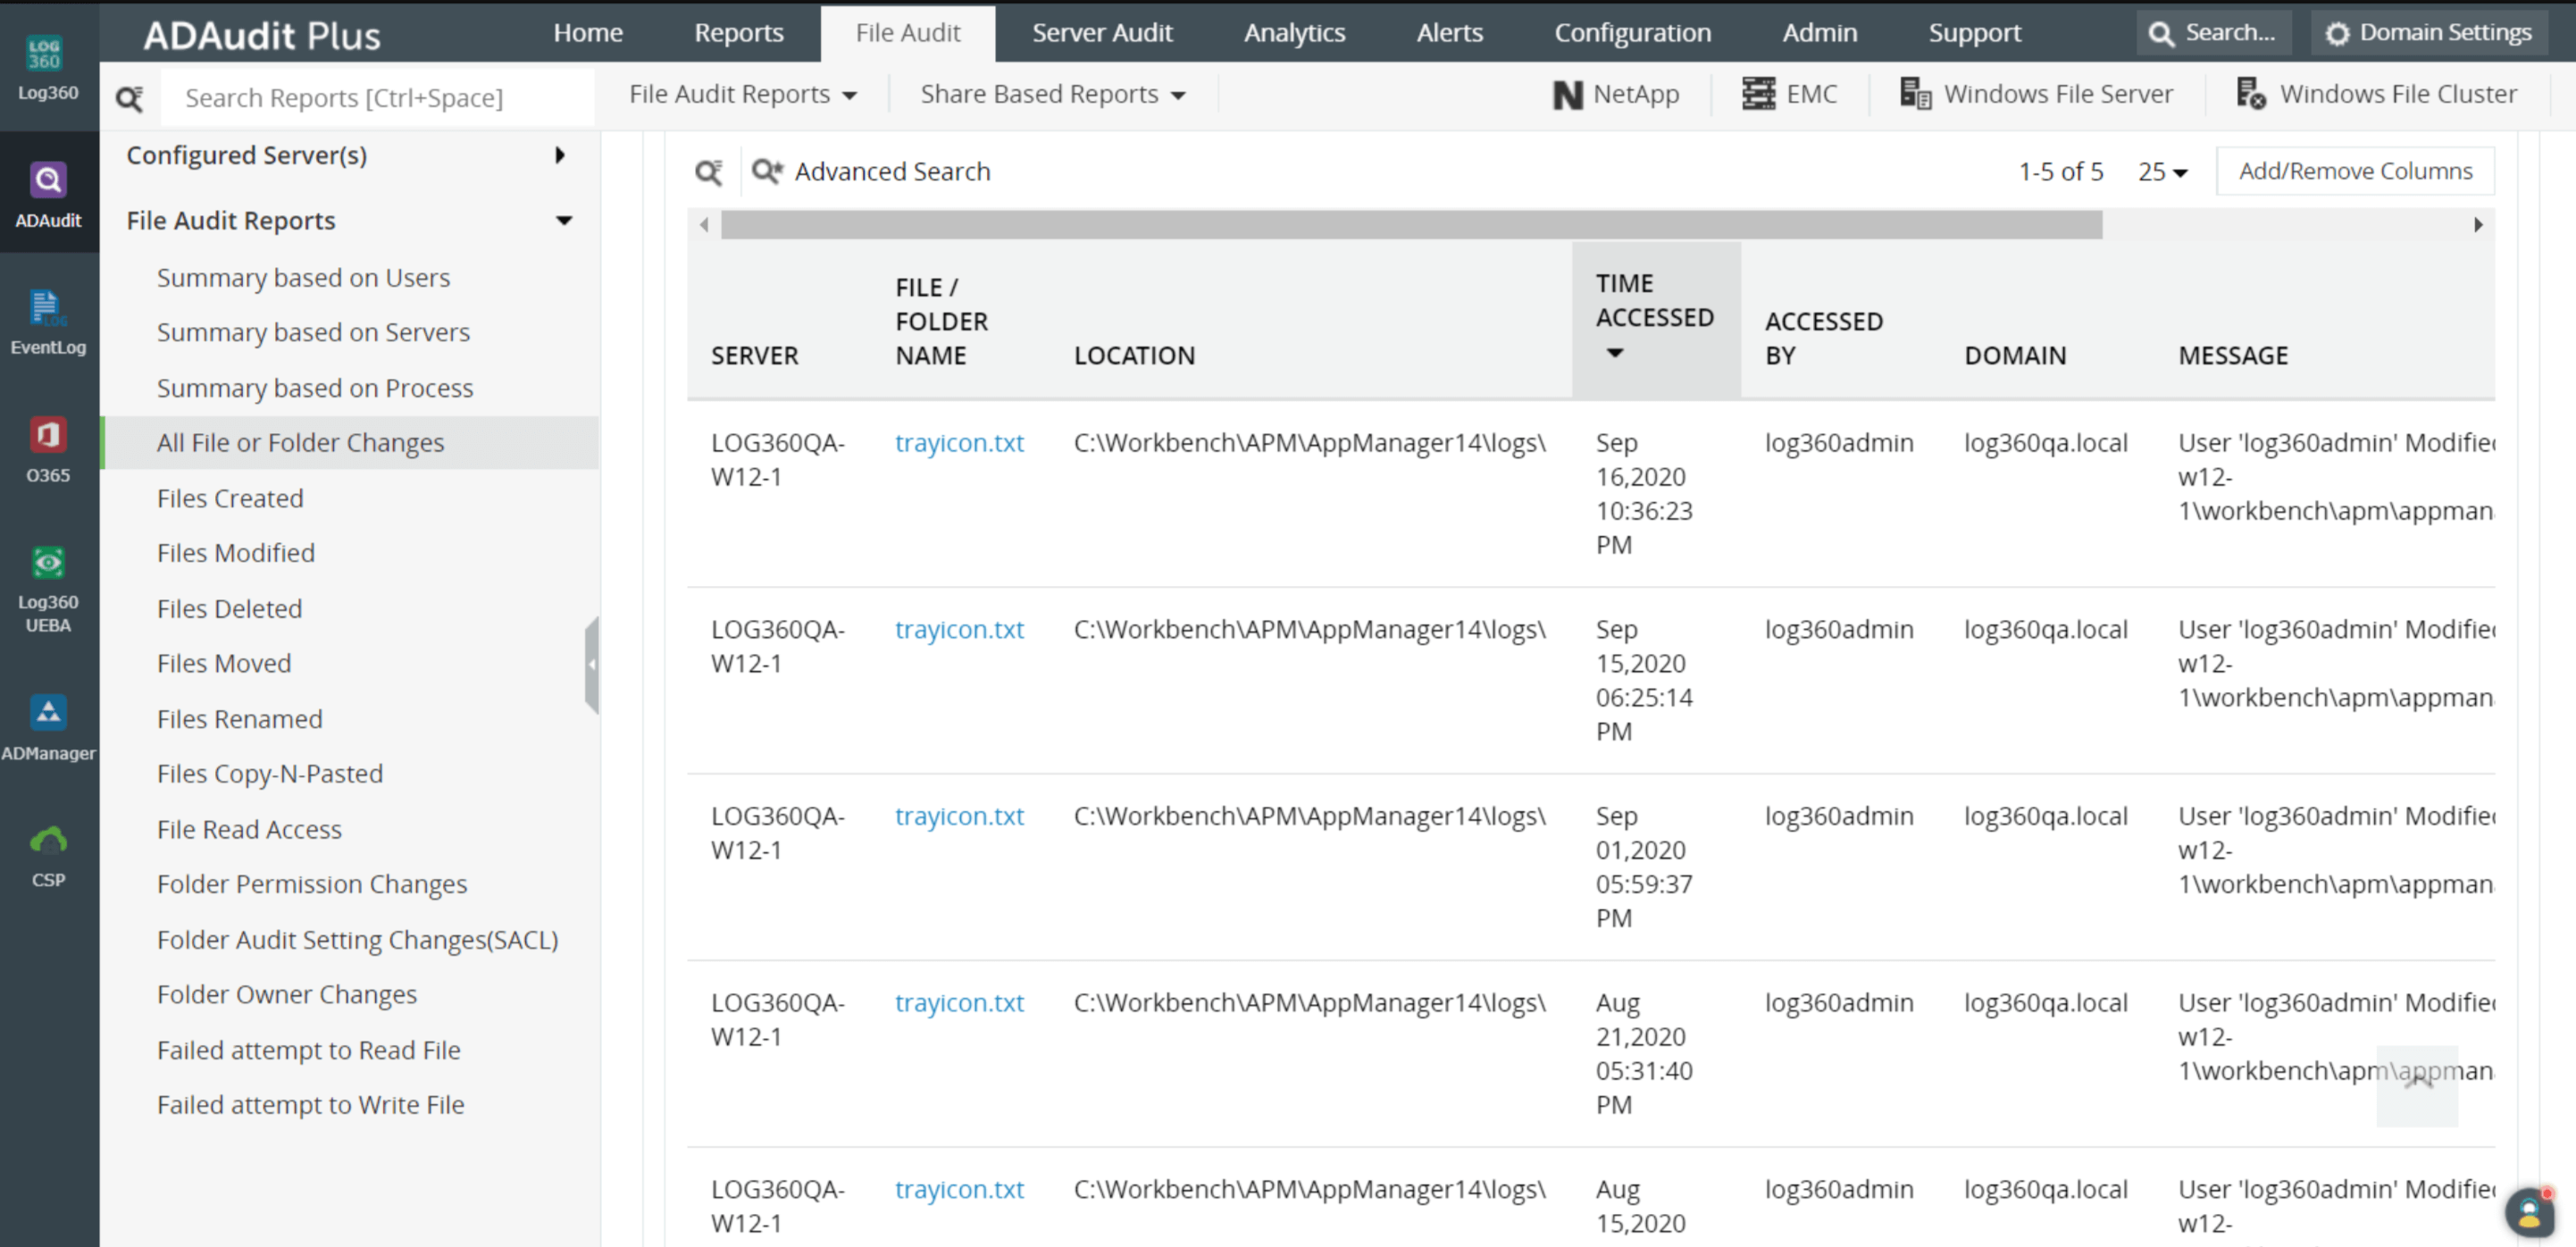 All file or folder changes report on ManageEngine's Log360